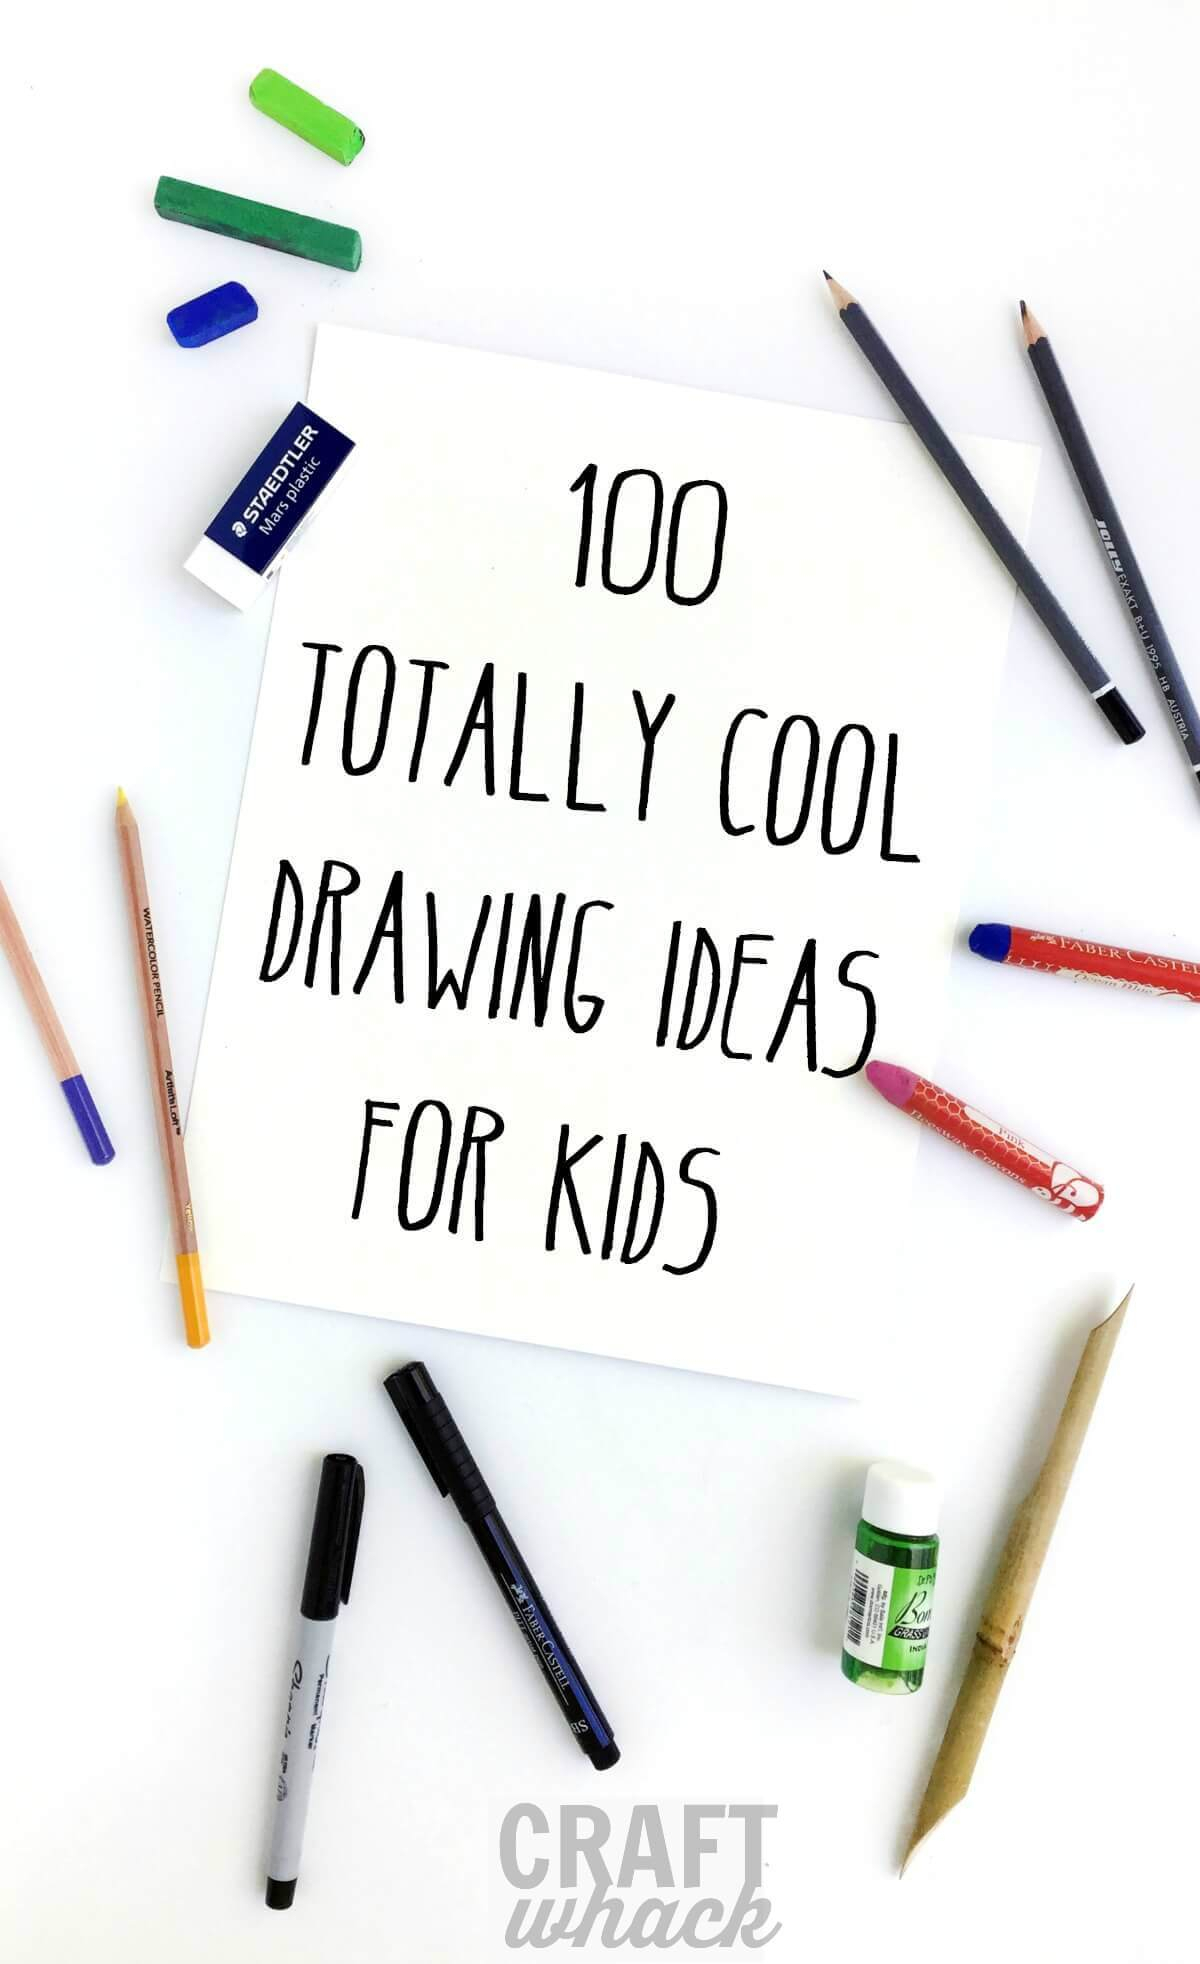 100 crazy cool drawing ideas for kids · craftwhack